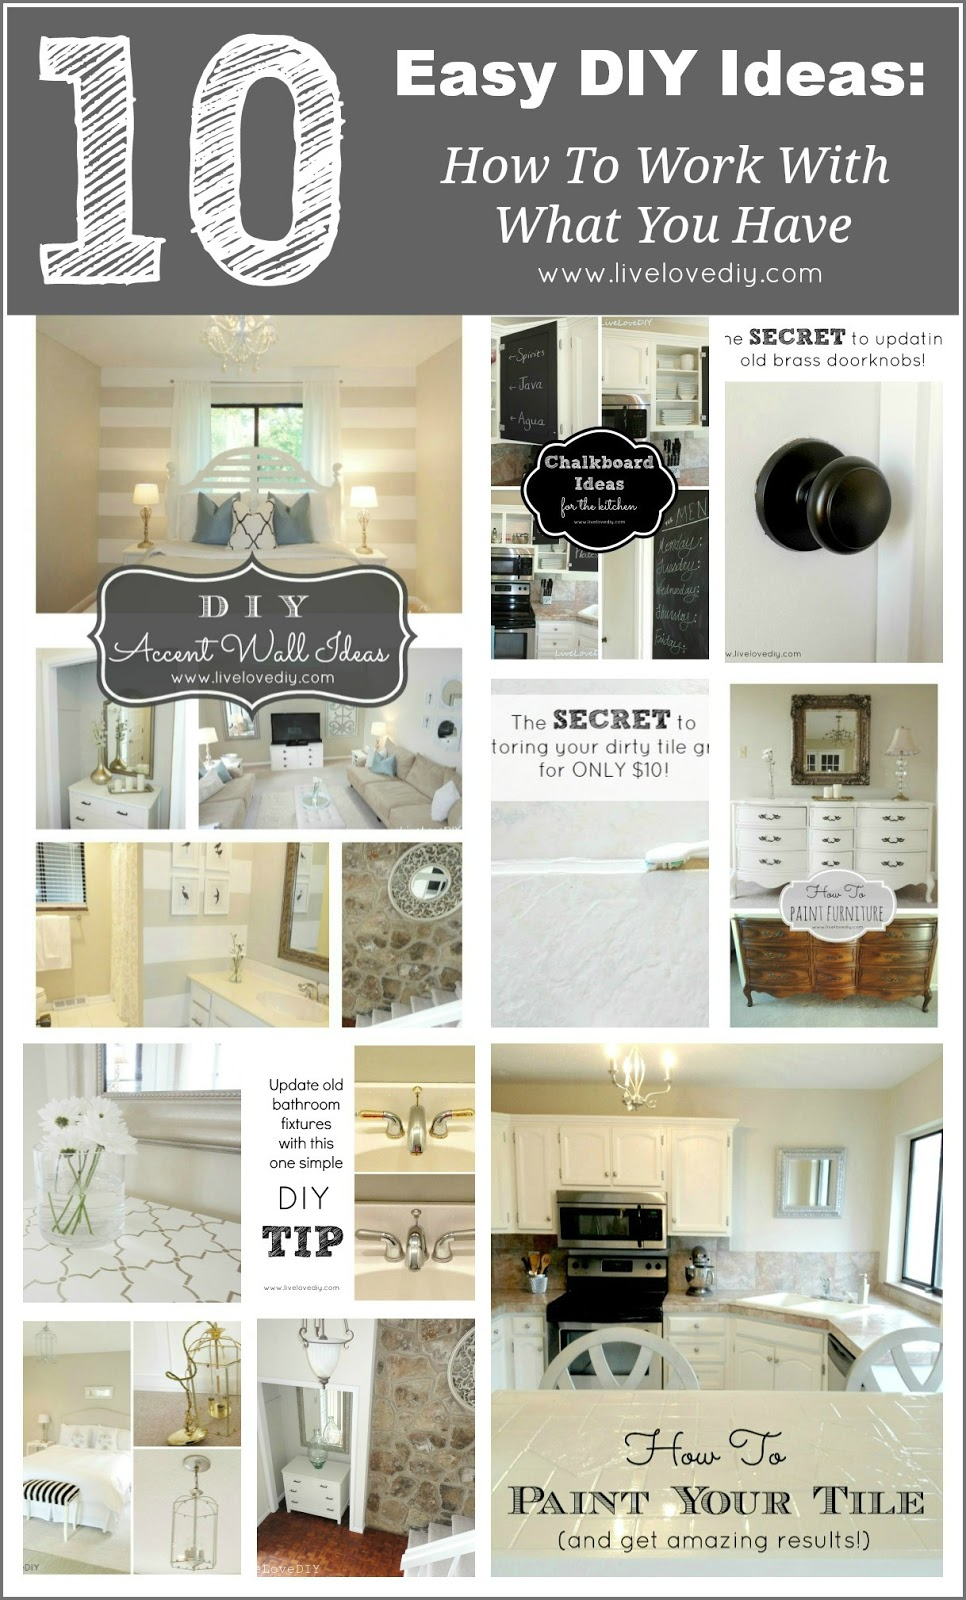 And So That S What I Ve Spent The Past Few Years Doing This Post Is A Collection Of My 10 Favorite Easy Diy Ideas